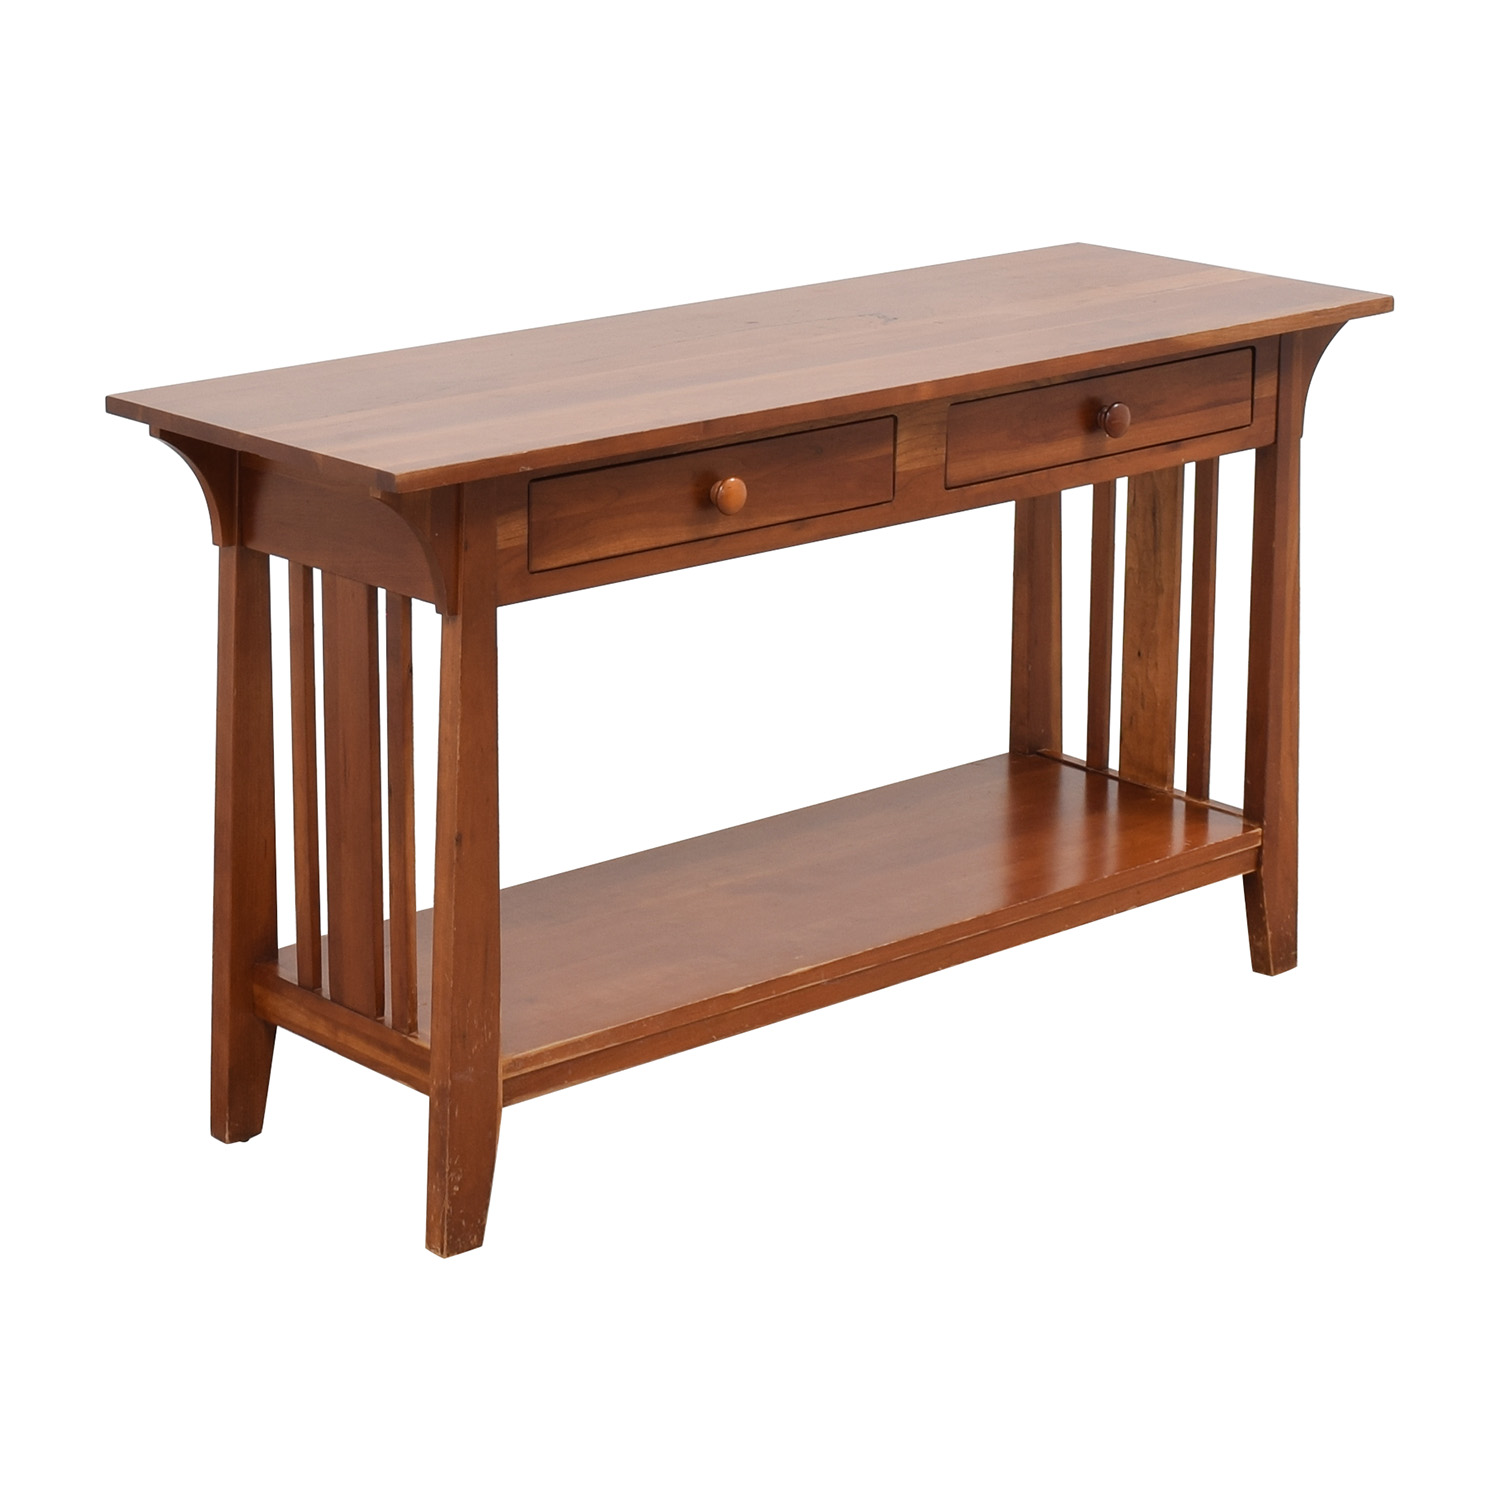 buy Ethan Allen Console with Drawers Ethan Allen